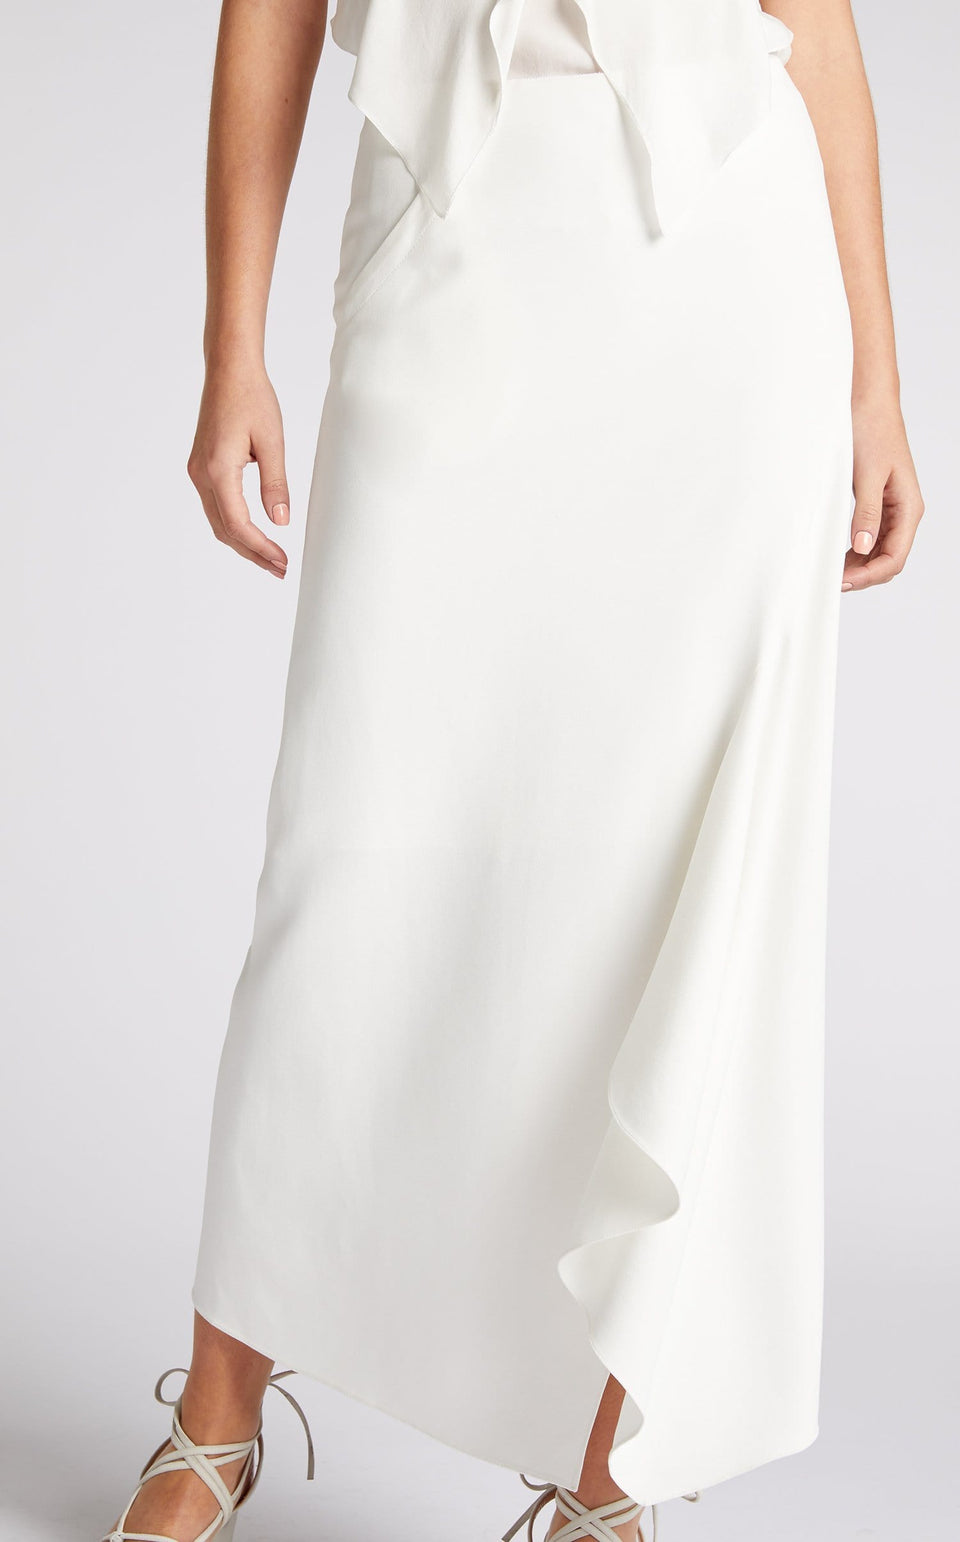 Whiteleaf Skirt